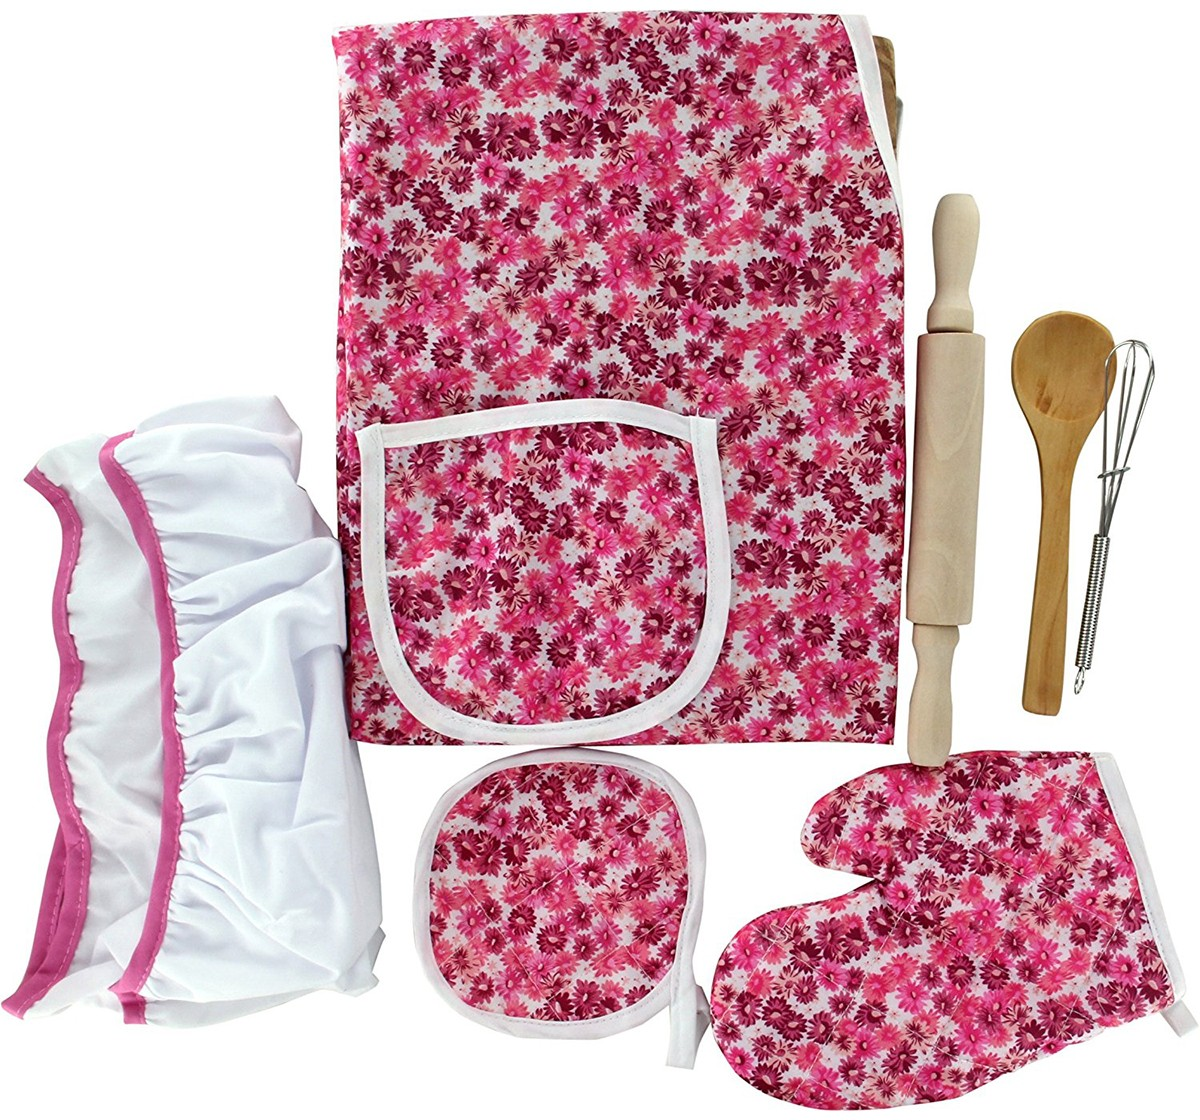 Comdaq Deluxe Chef Set for Girls age 3Y+ (White/Pink)